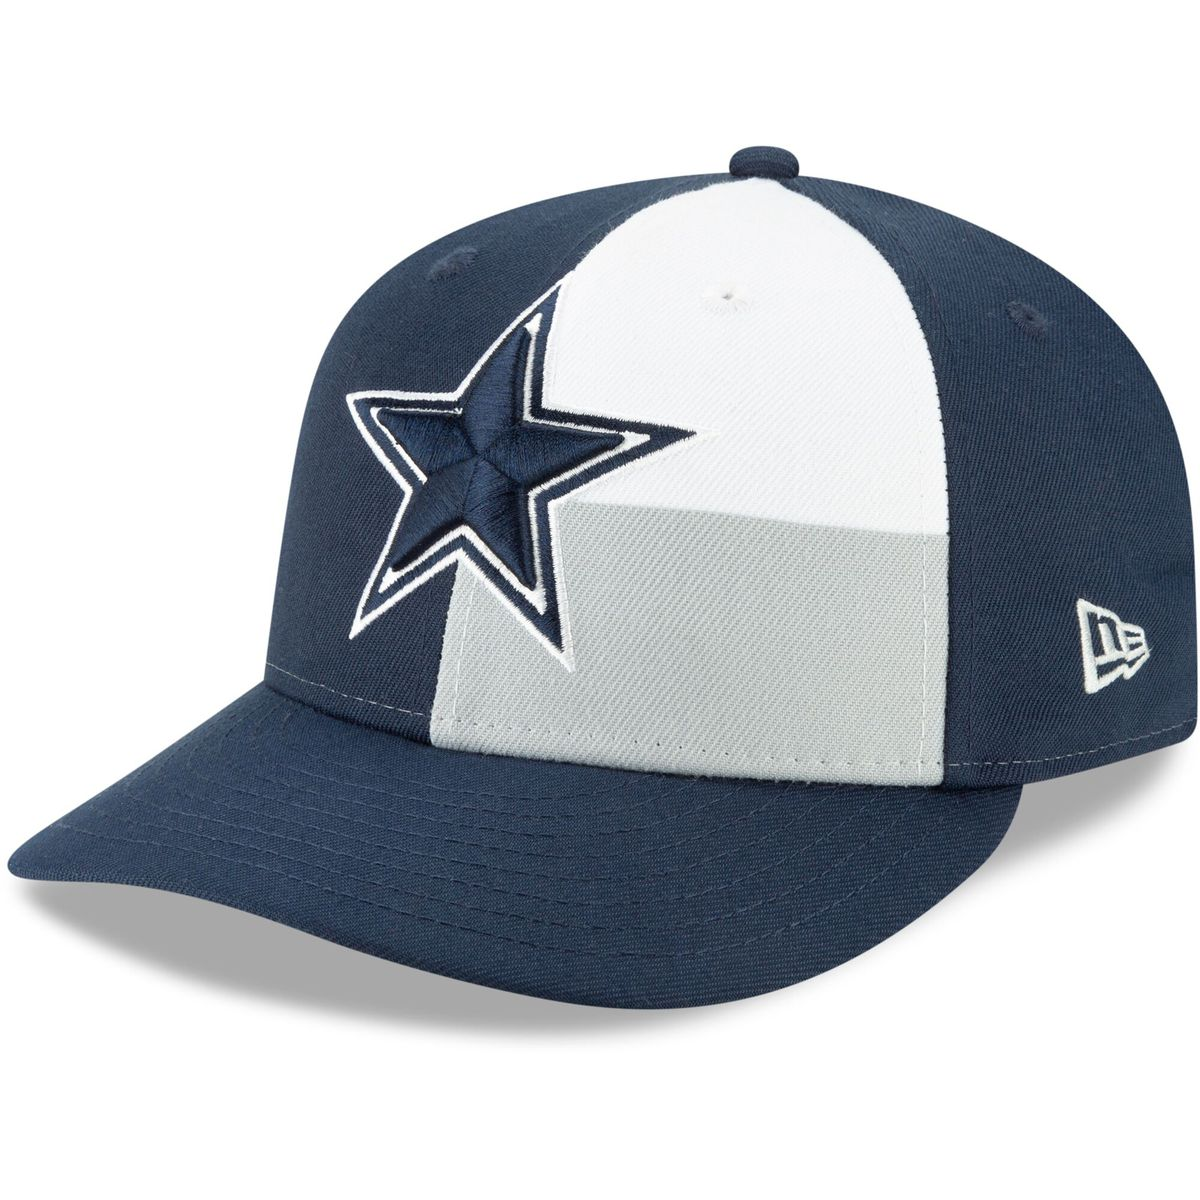 1ba307685 Dallas Cowboys New Era On Stage Official Low Profile 59FIFTY for $37.99  Fanatics